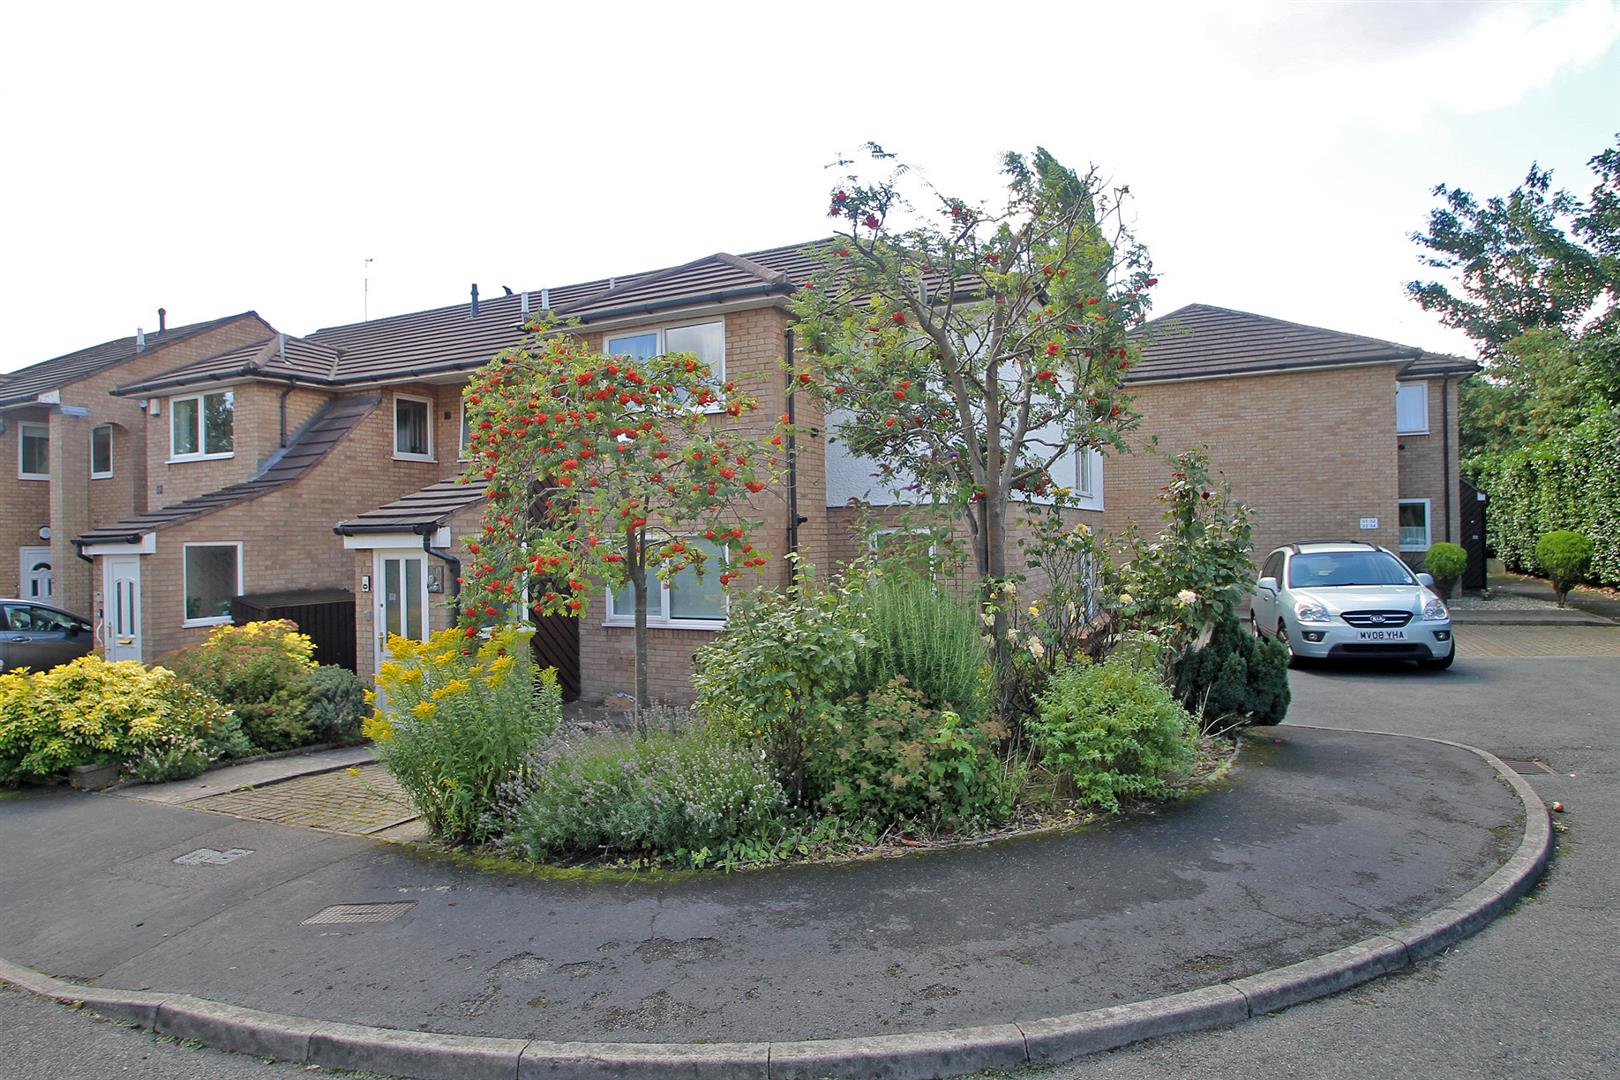 Retirement Property In Arnold Nottingham To Rent